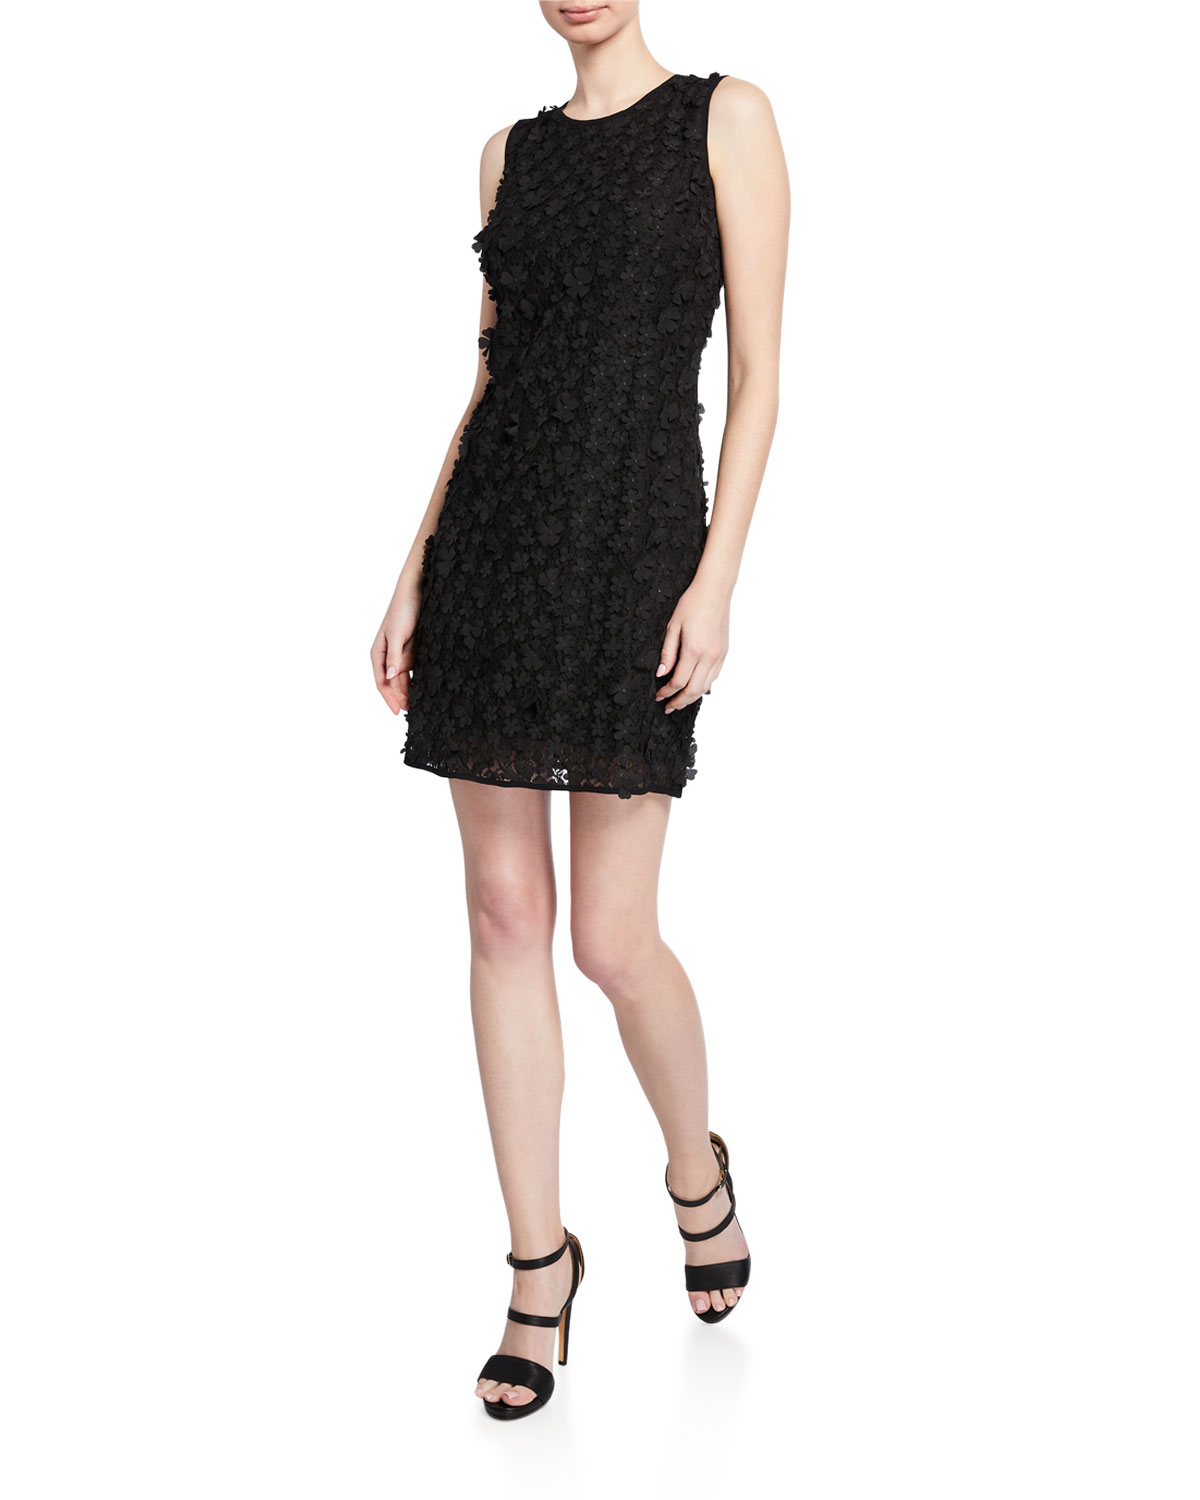 06a772f7 Karl Lagerfeld Floral Applique Lace Sheath Dress In Black | ModeSens